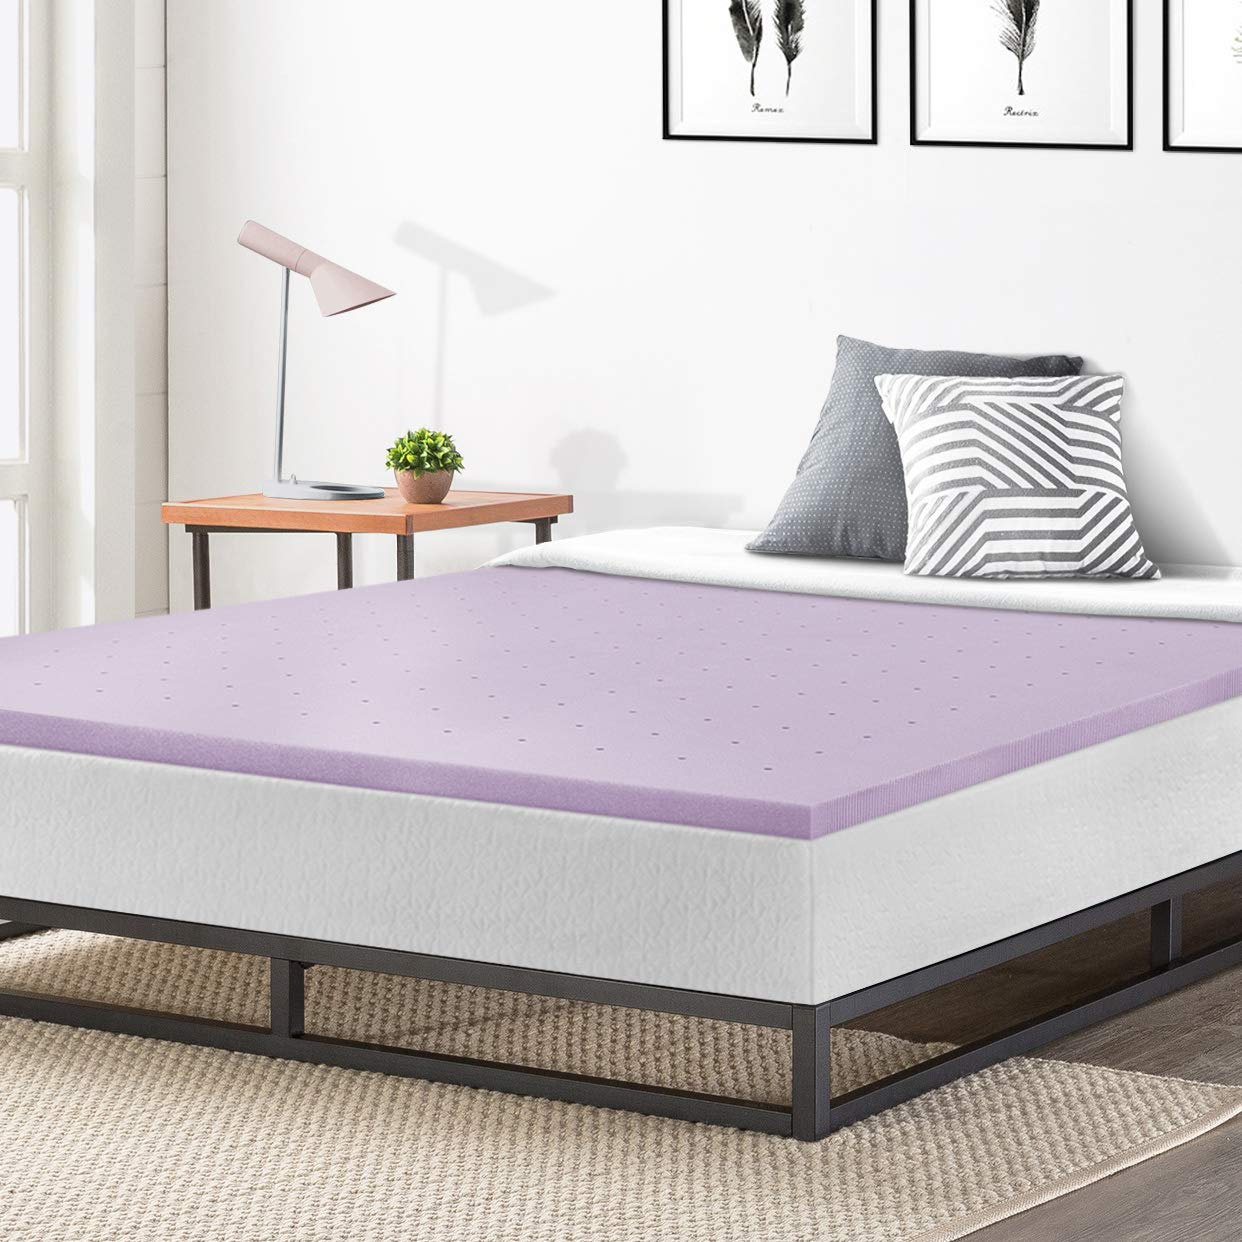 Best Price Mattress Twin Mattress Topper - 1.5 Inch Lavender Infused Memory Foam Bed Topper Cooling Mattress Pad, Twin Size